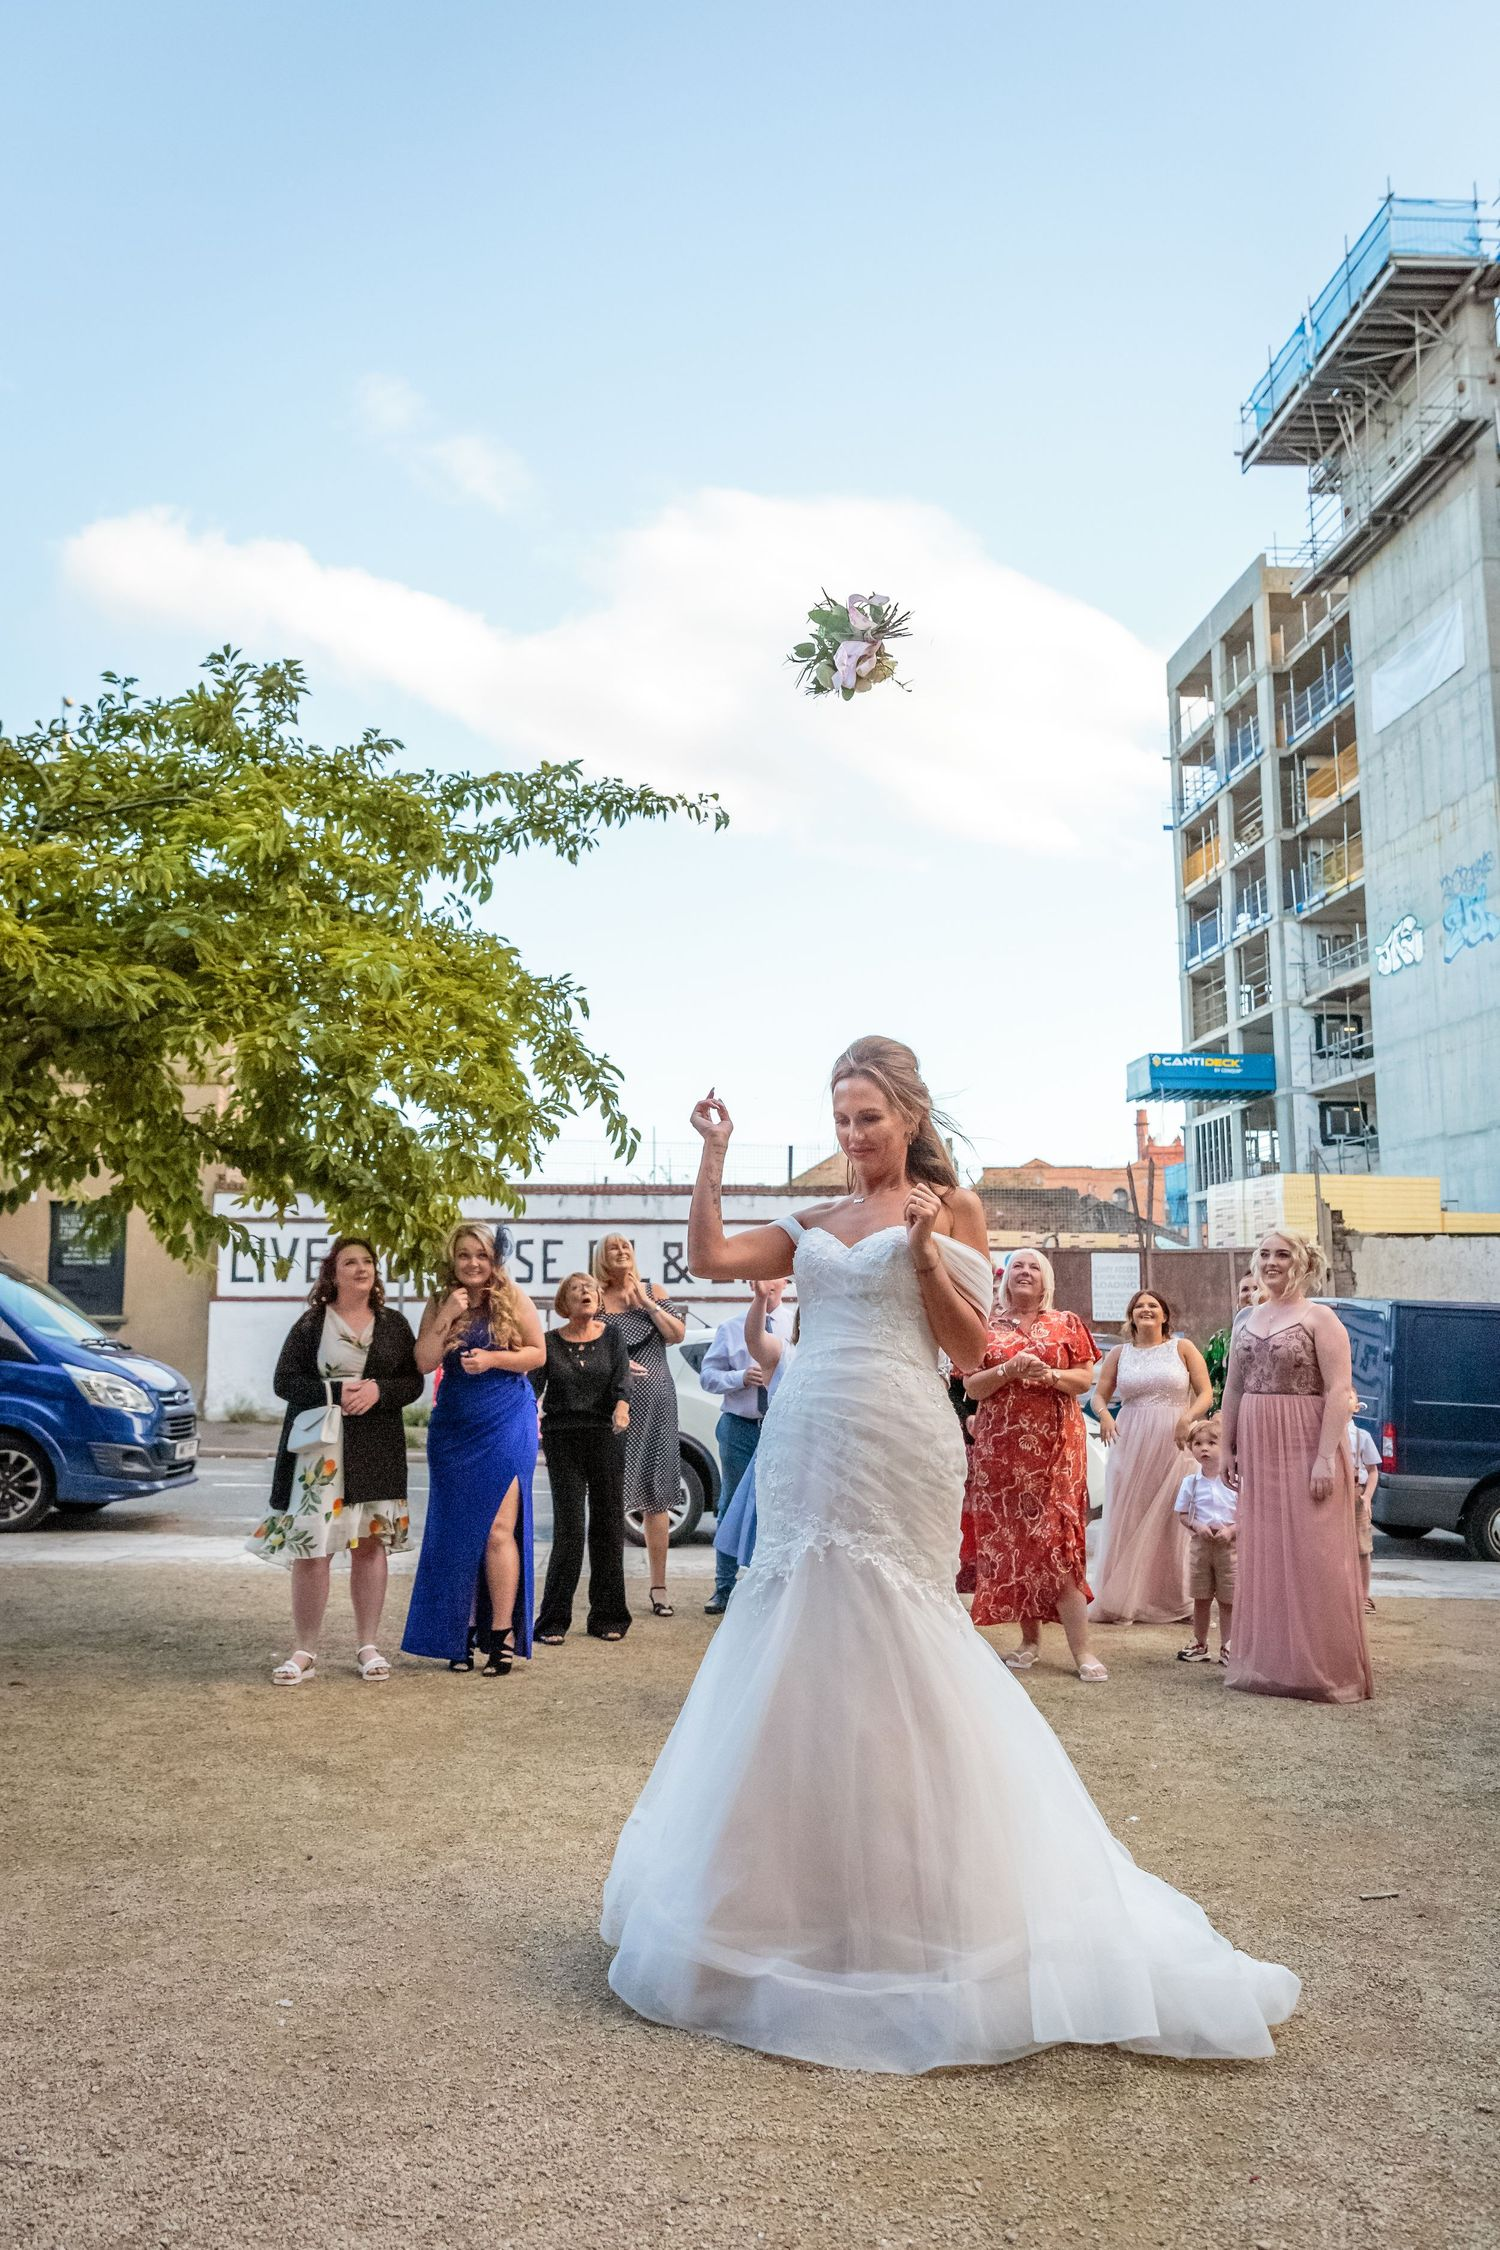 brides bouquet in the air as she throws it over her head for one lucky lady to catch